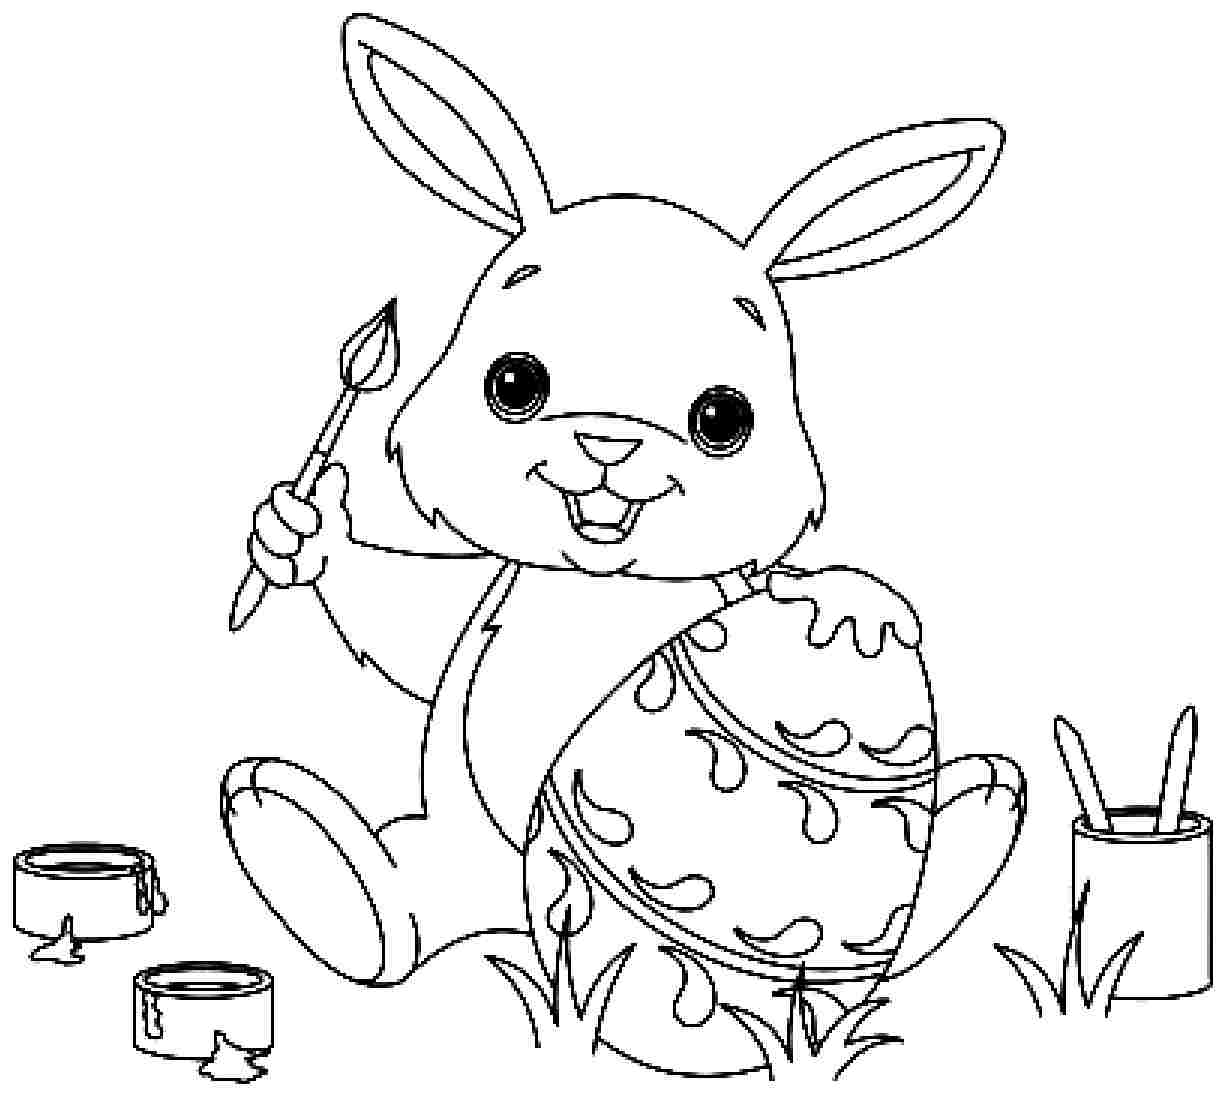 1226x1097 Bunny Coloring Pages Best For Kids Printables Preschoolers Picture